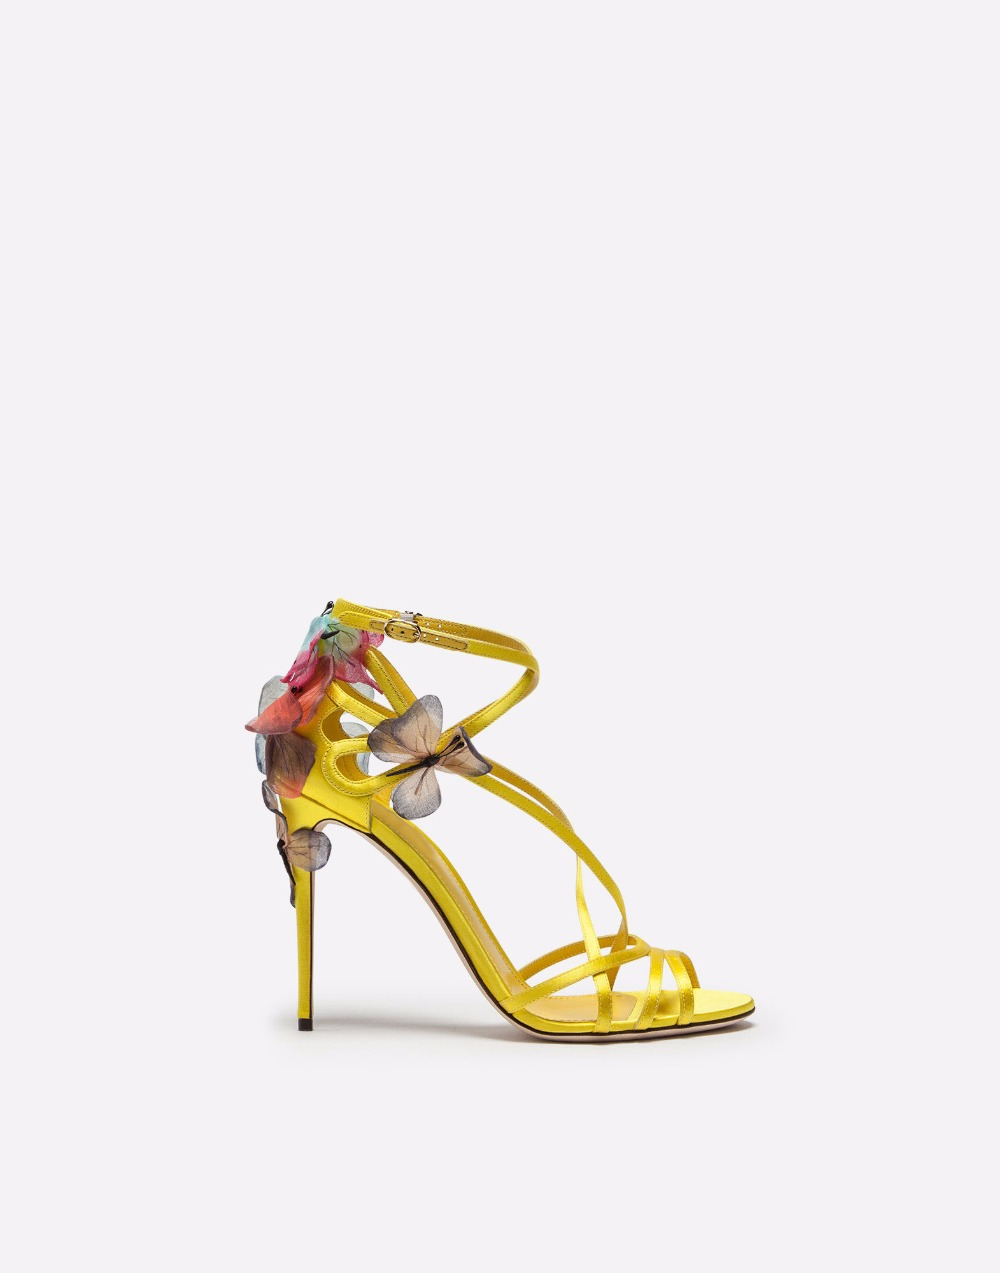 2018 New Fashion Handmade Erfly Sandals Women Lemon Yellow Black Satin Stiletto High Heels Ankle Wrap Woman Luxury